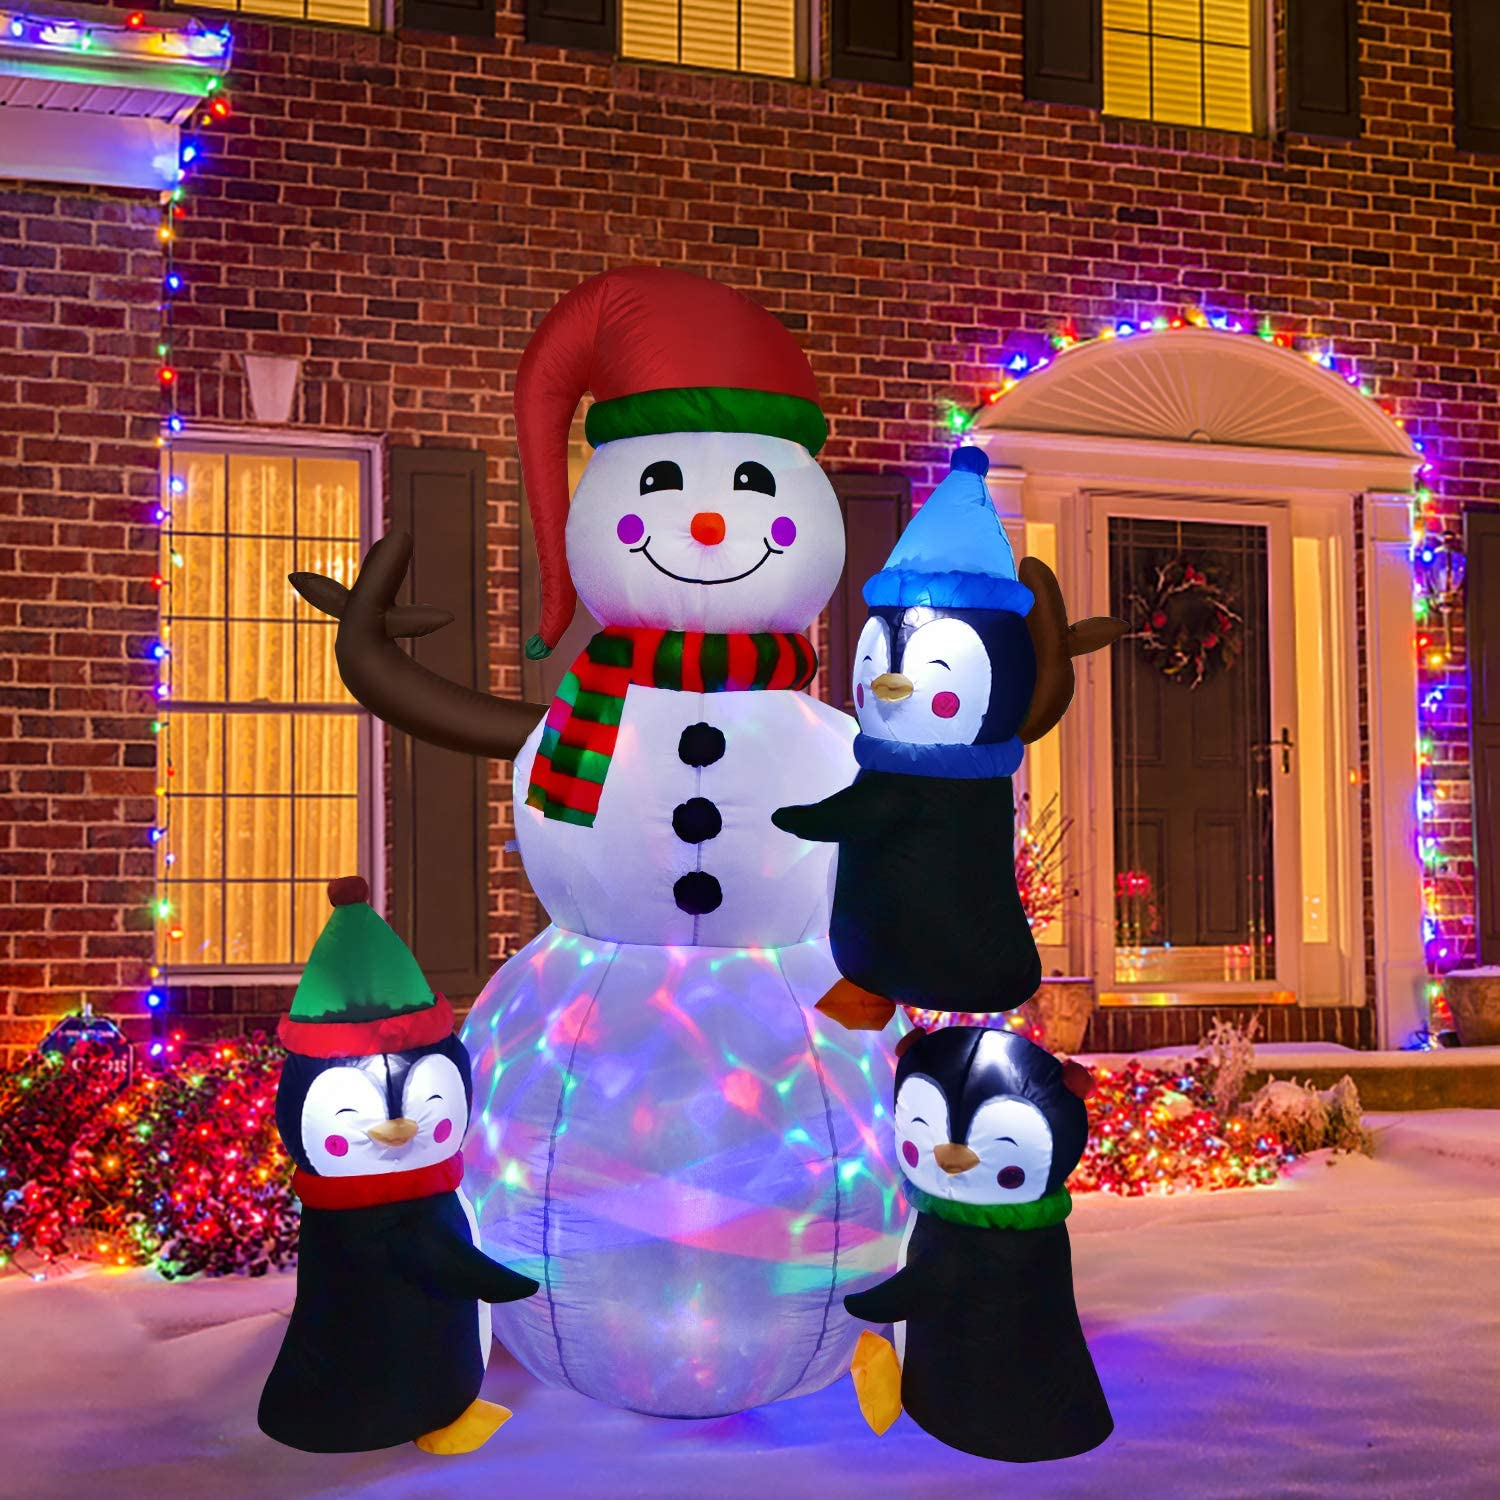 Artiflr 6Ft Lighted Christmas Inflatable Snowman with Three Cute Penguins, Building Color LED Lights Outdoor Indoor Holiday Decorations Blow up Yard Giant Lawn Inflatables Home Decor